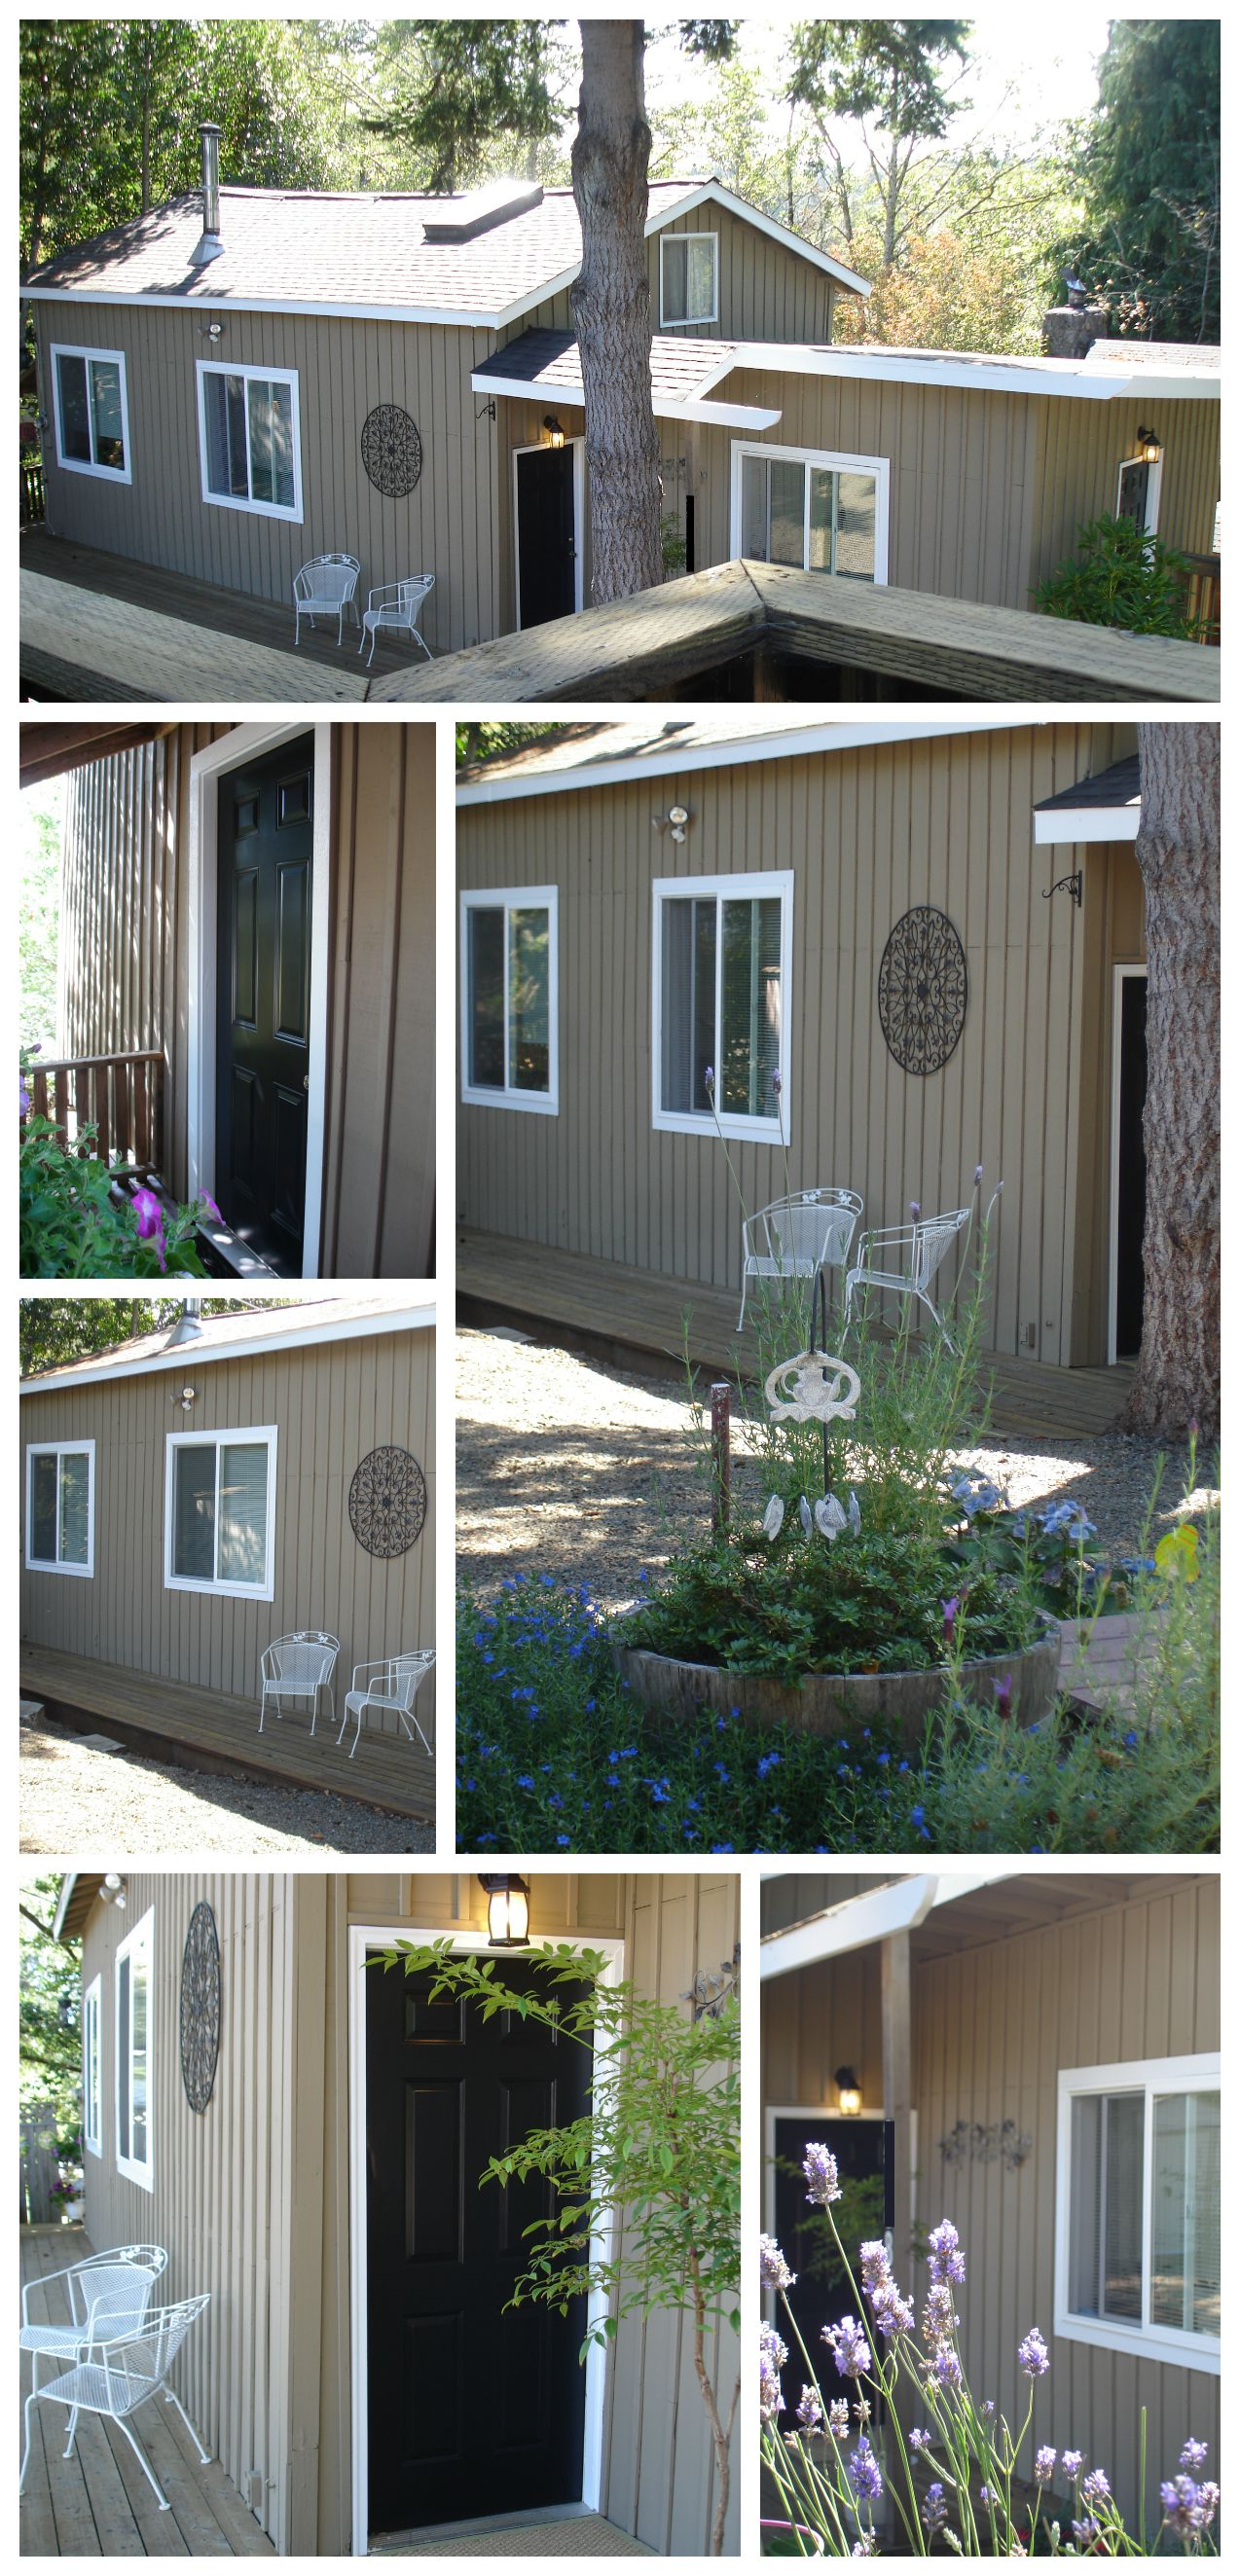 Little Cottage - Exterior View | The Little Cottage October Update